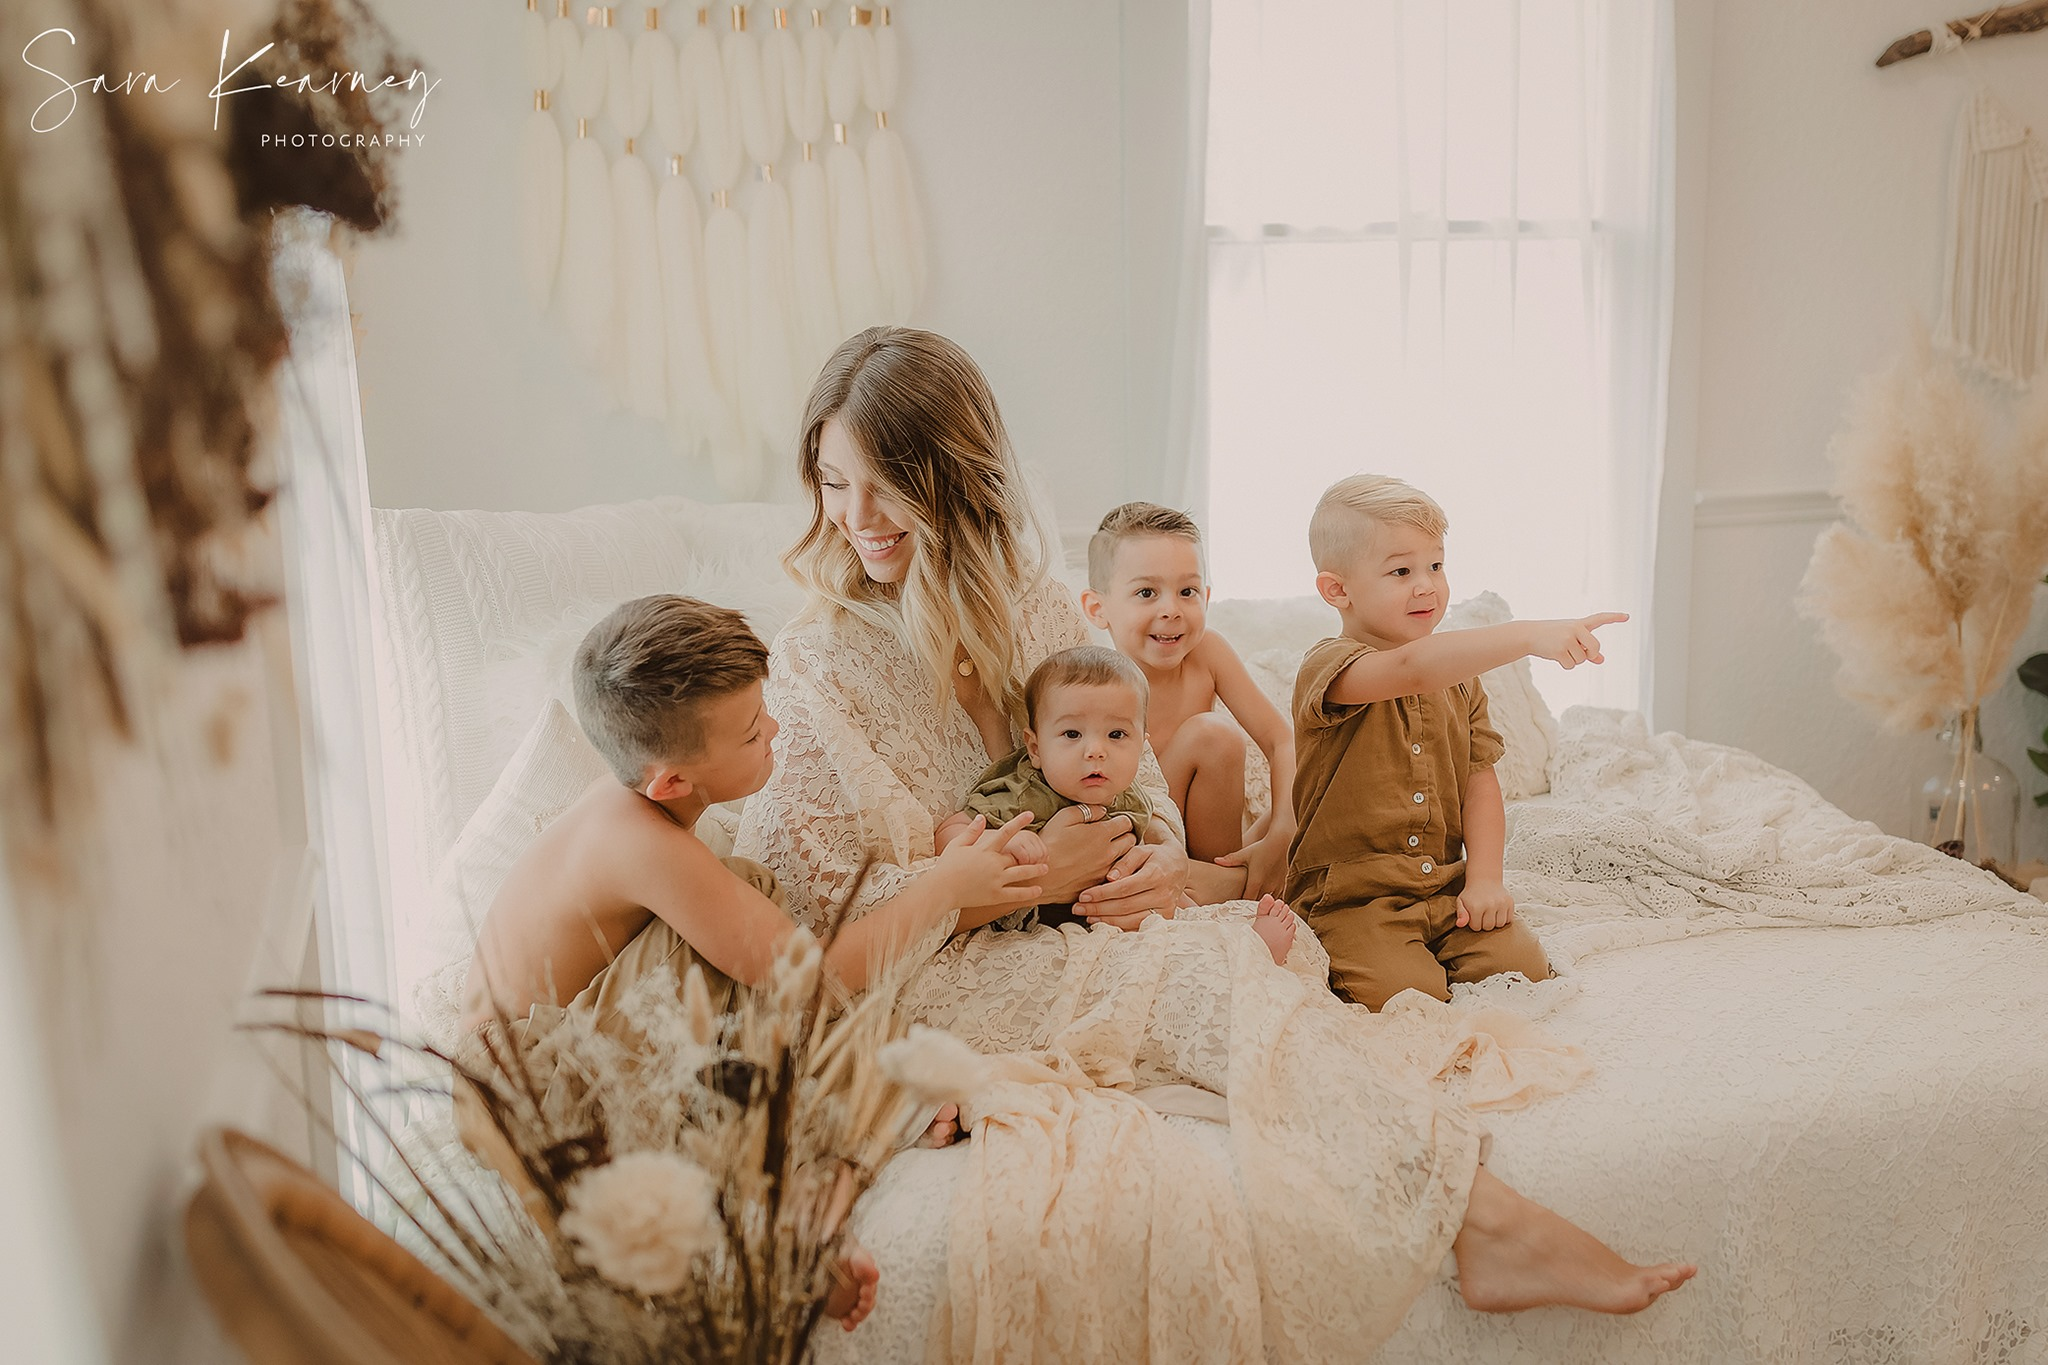 Boho Photo Shoot!! Mommy photoshoot | Sara Kearney Orlando Photographer 2